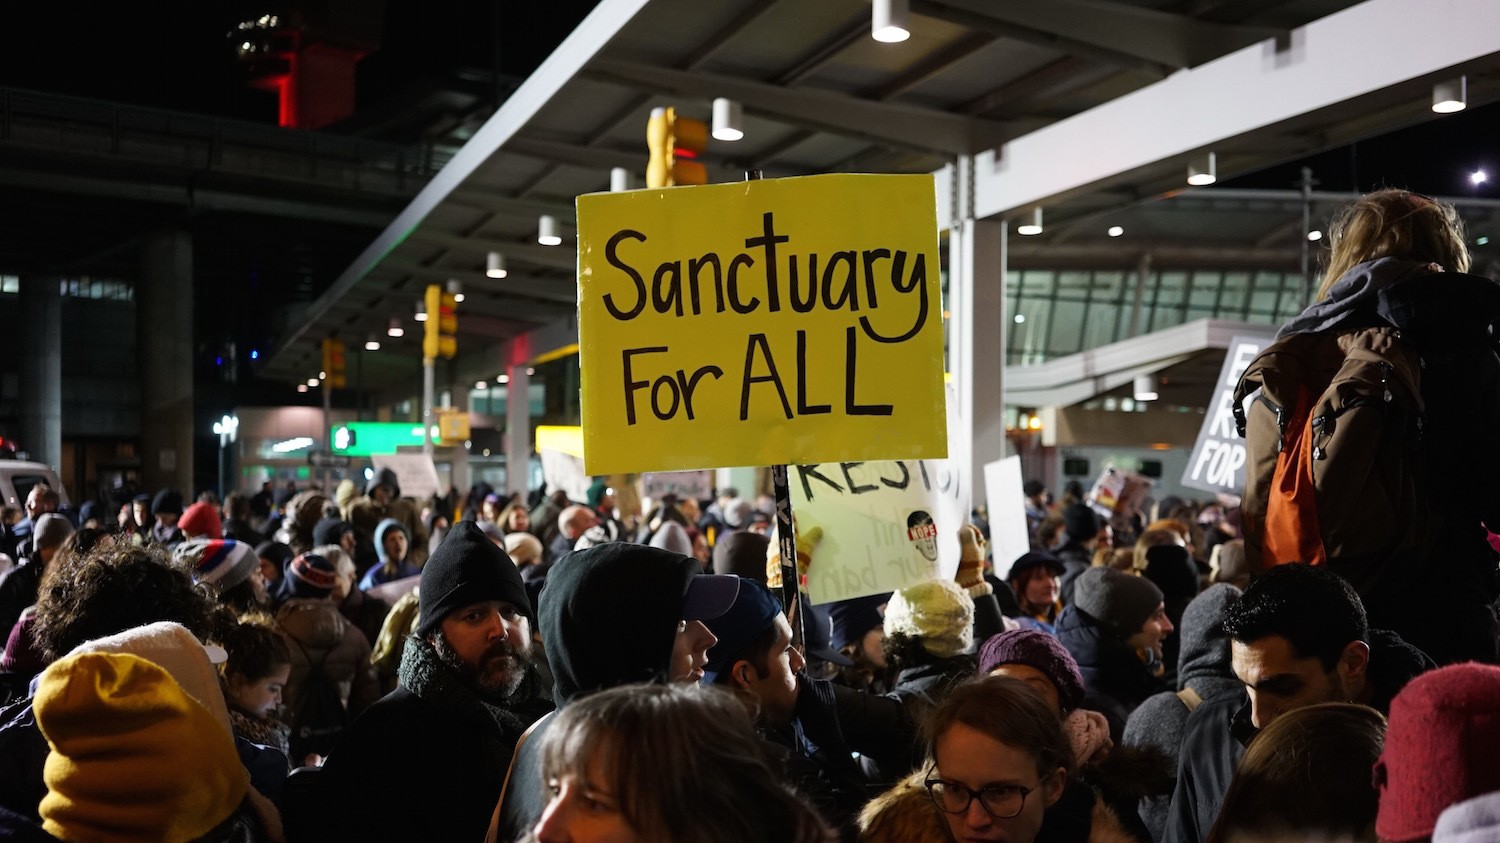 In Photos: New Yorkers Flood JFK Airport in Massive Outcry Over Muslim Ban